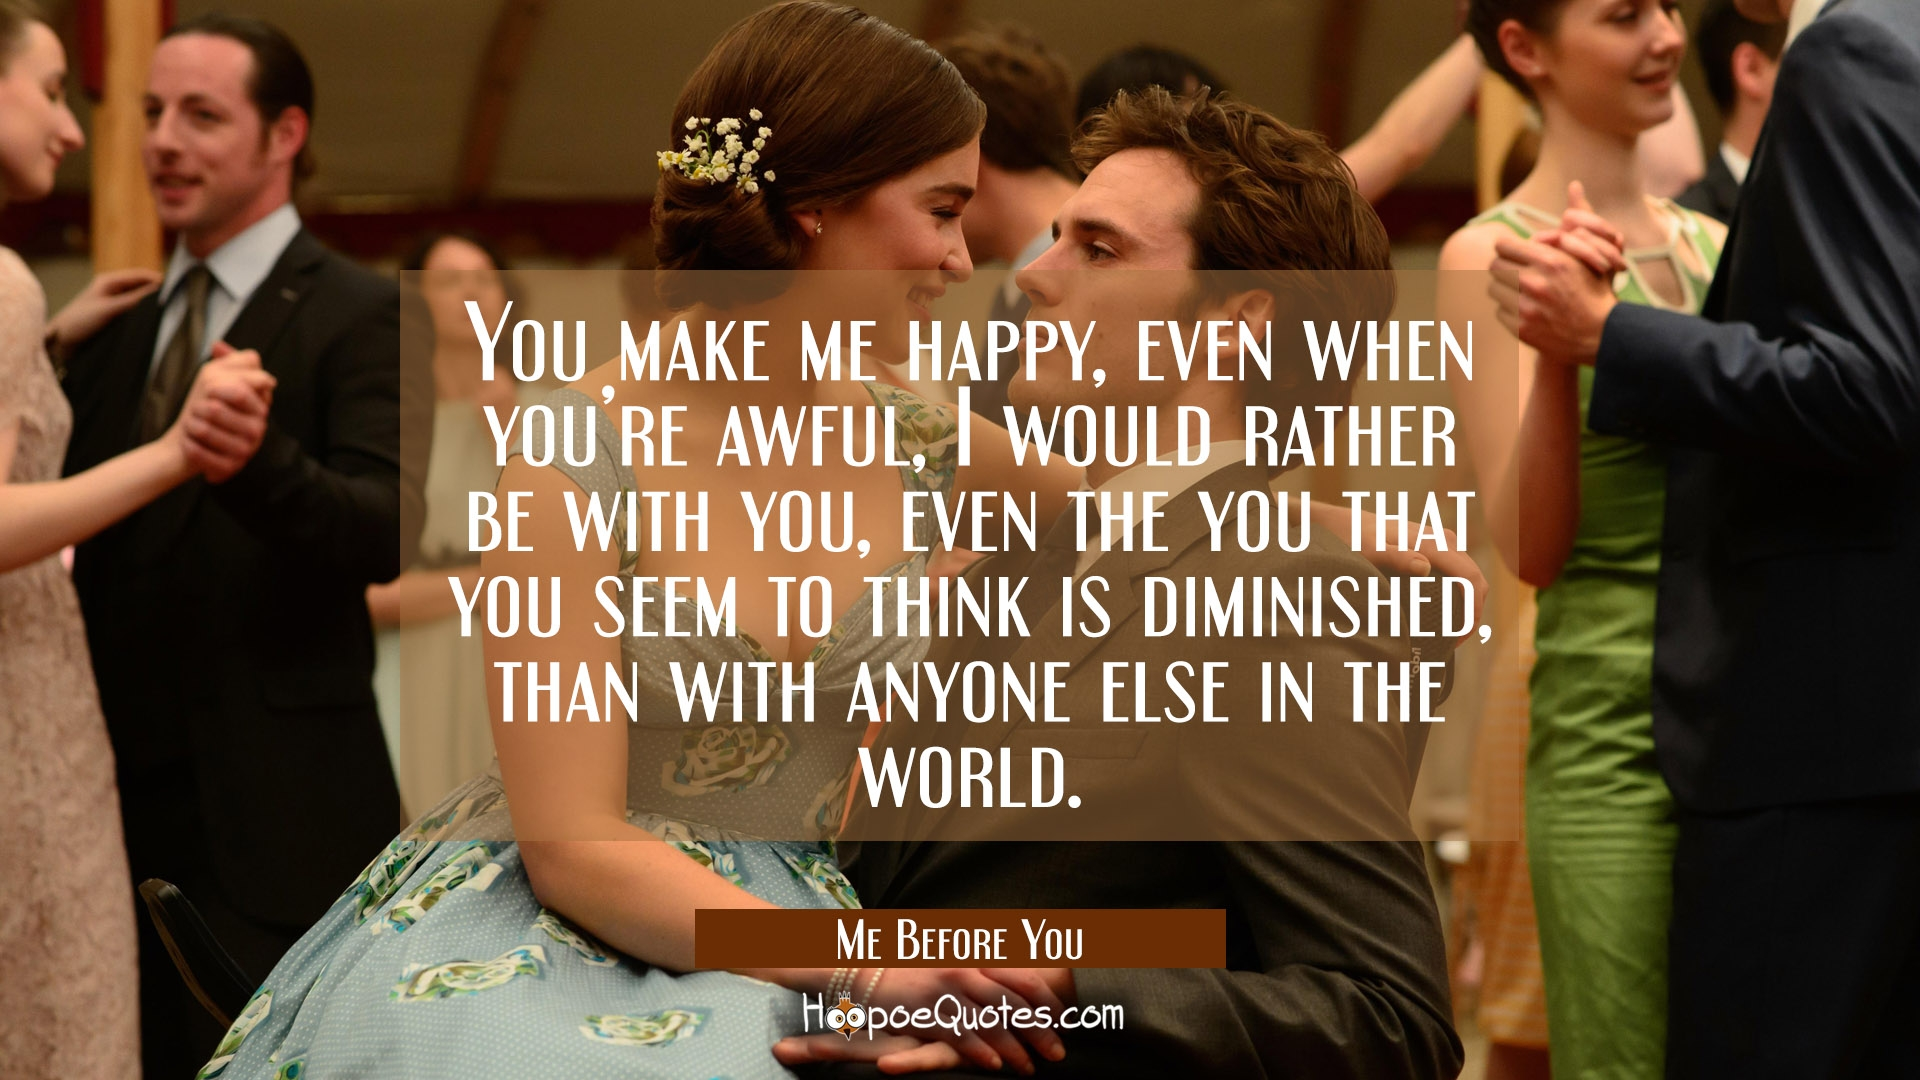 Me Before You Quotes You Make Me Happy Even When You're Awful I Would Rather Be With